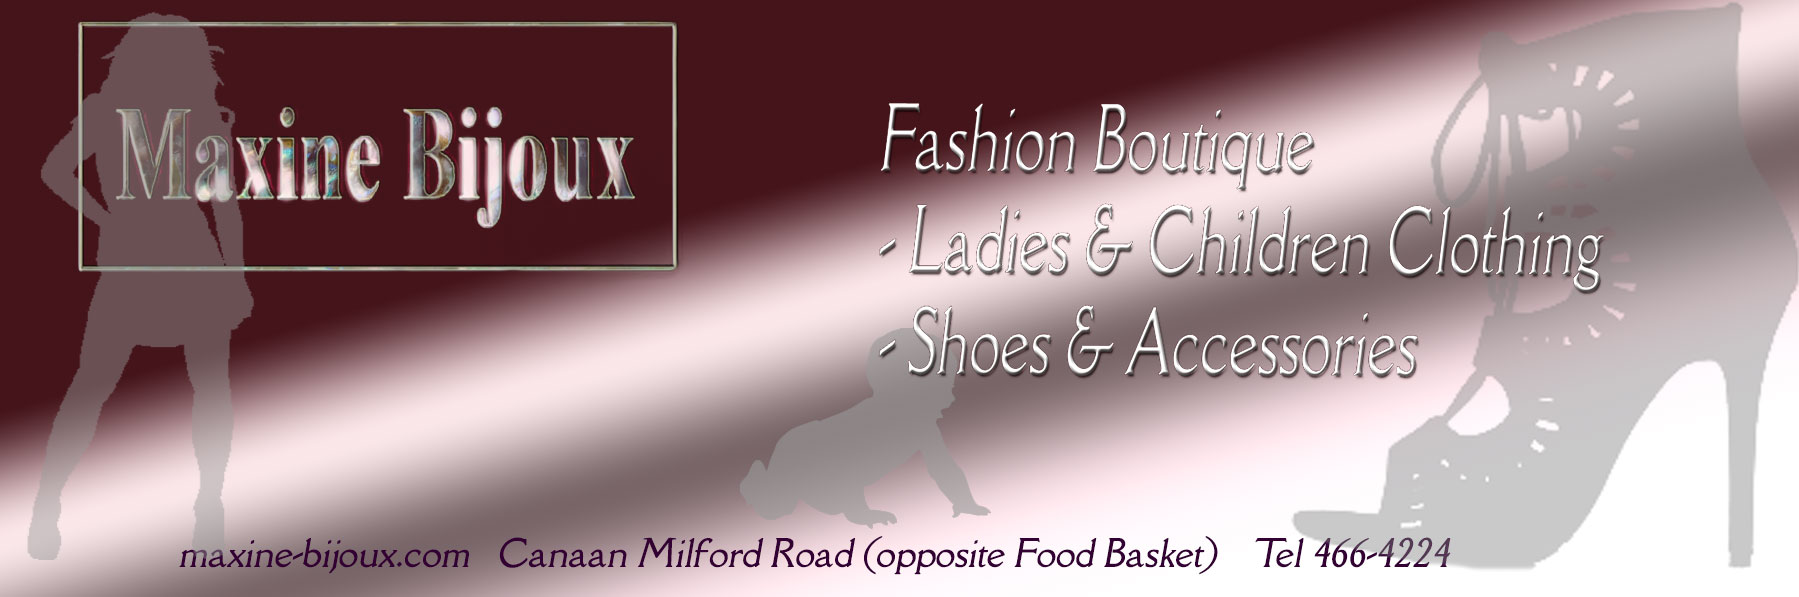 Maxine Bijoux Fashion Outlet